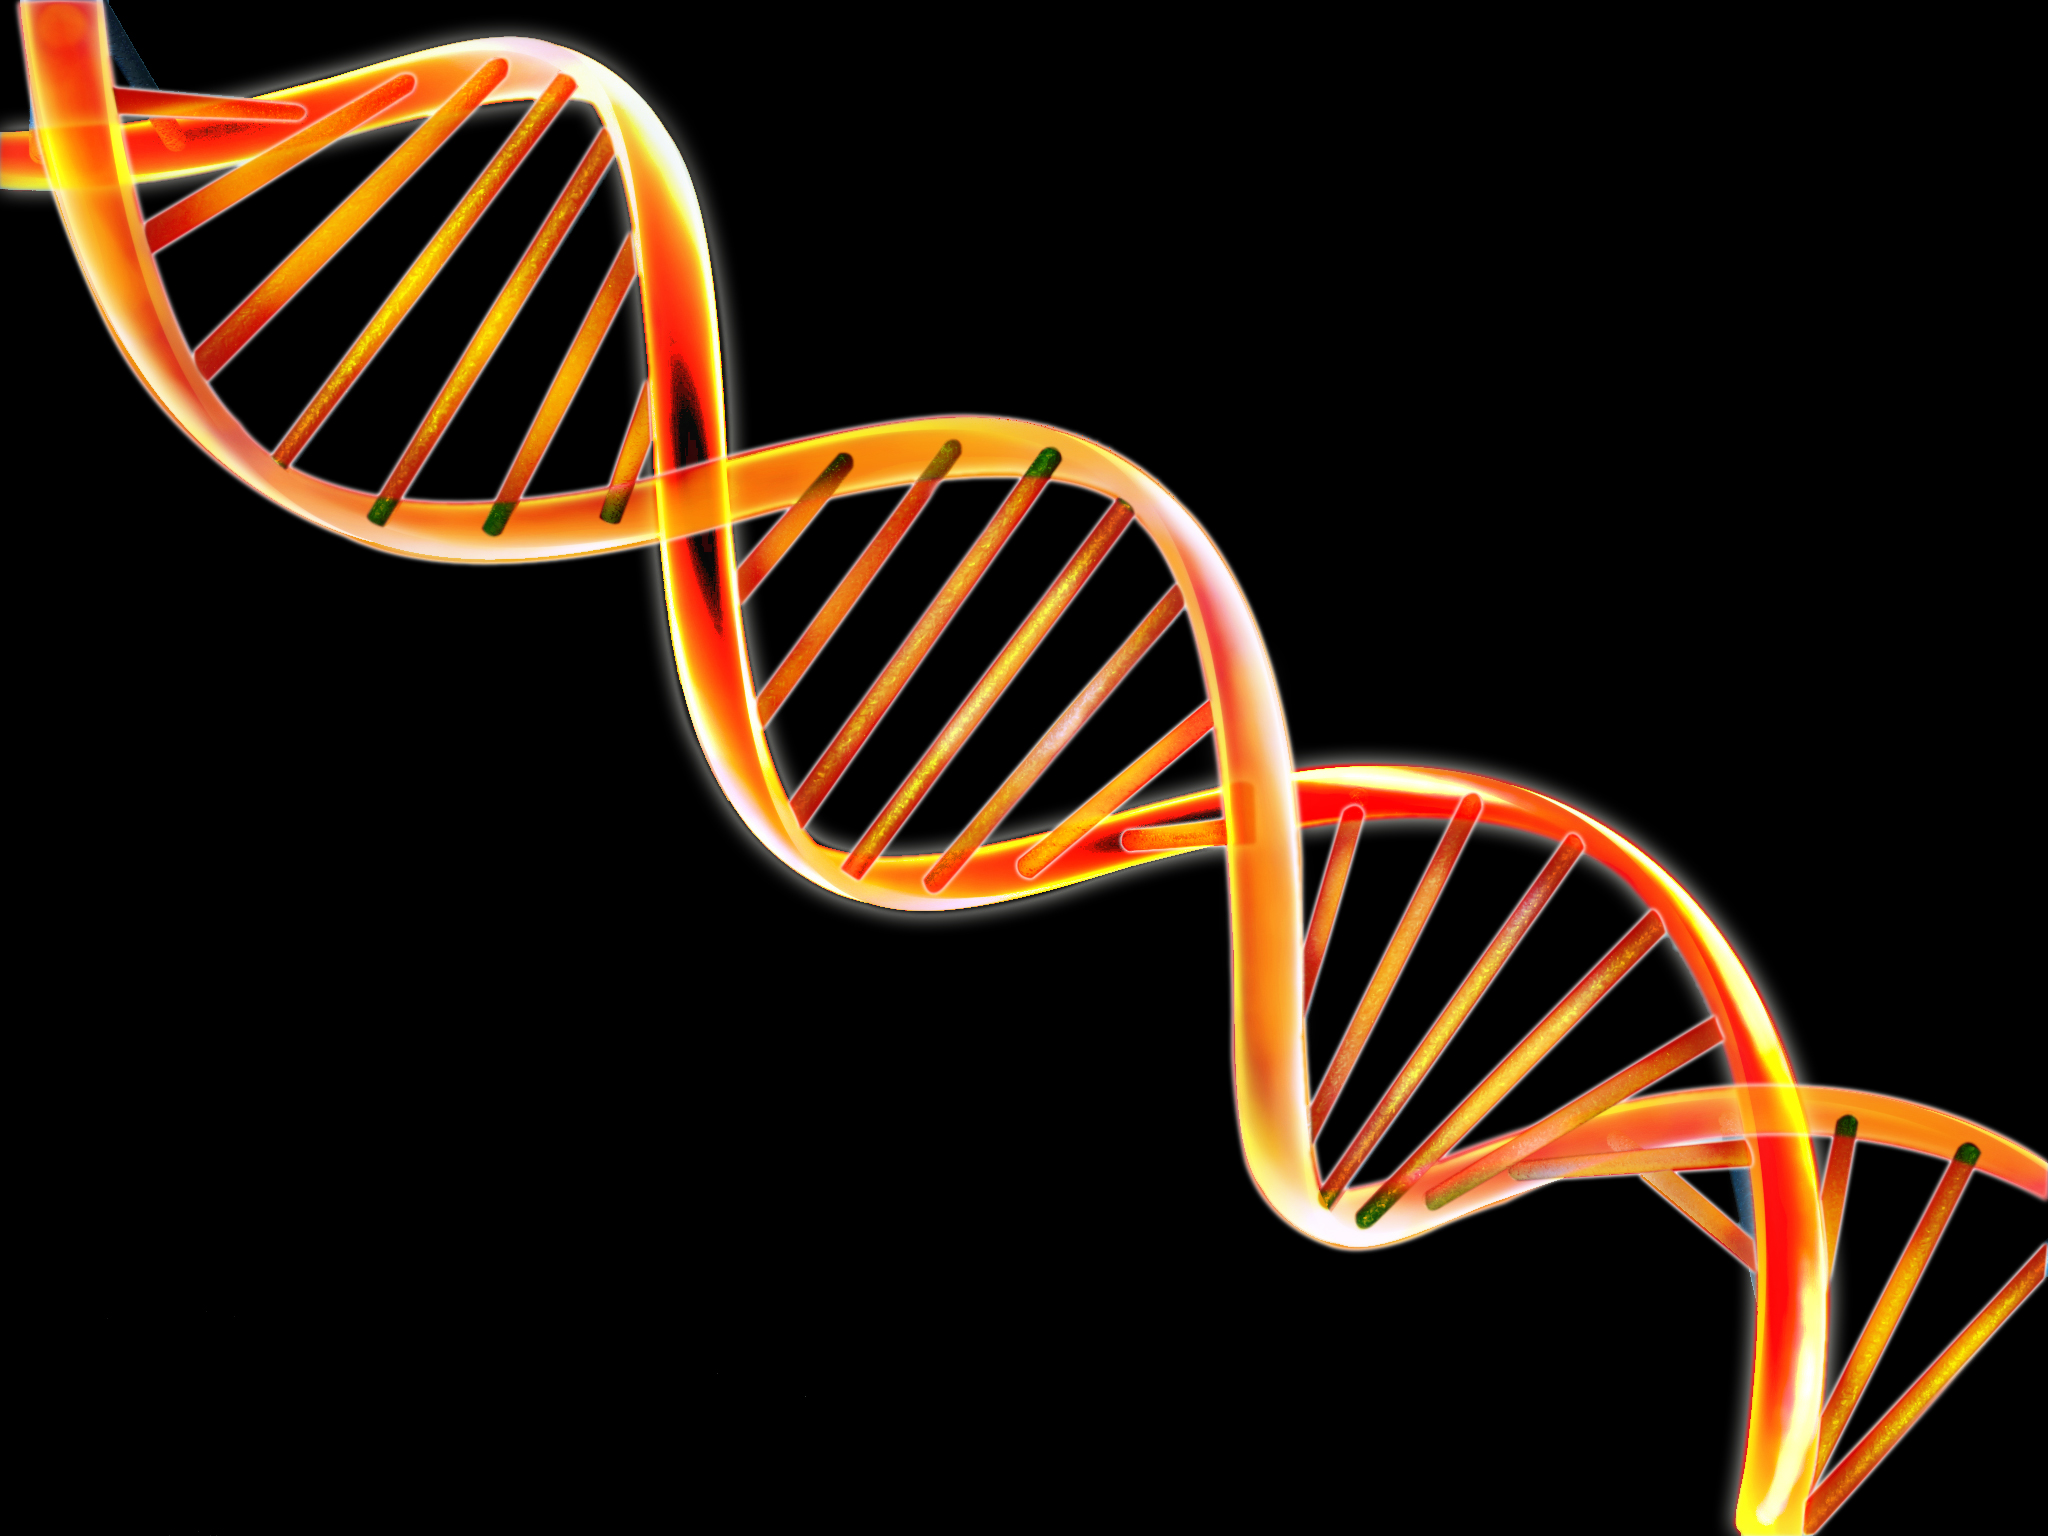 Analogy Double Helix is like two twist ropes that supports the 2048x1536